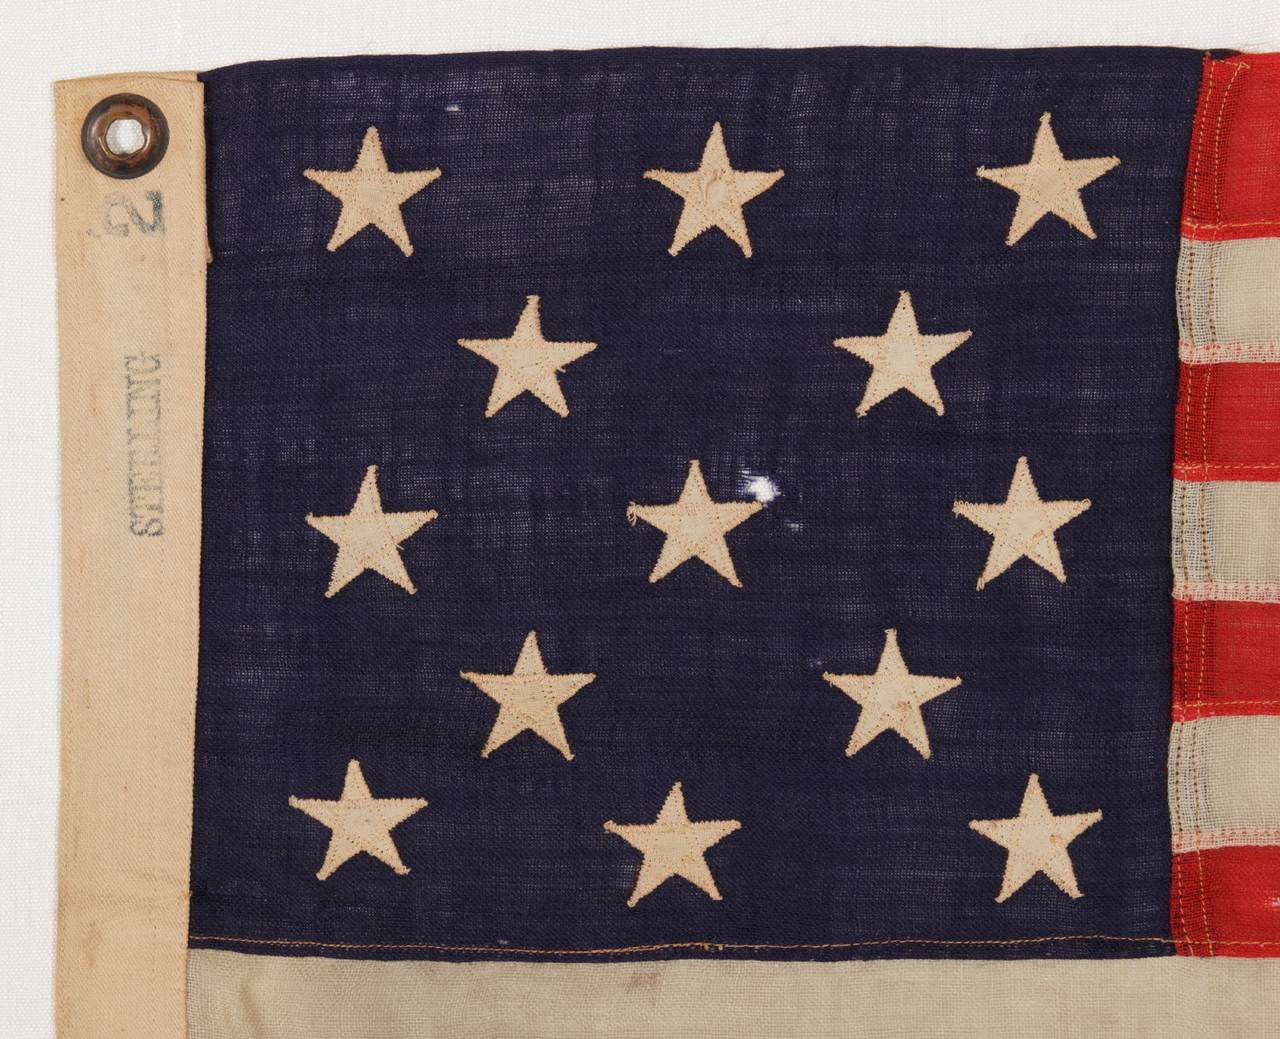 13 star flag with stars arranged in a 3 2 3 2 3 lineal 13 star flag with stars arranged in a 3 2 3 2 publicscrutiny Image collections